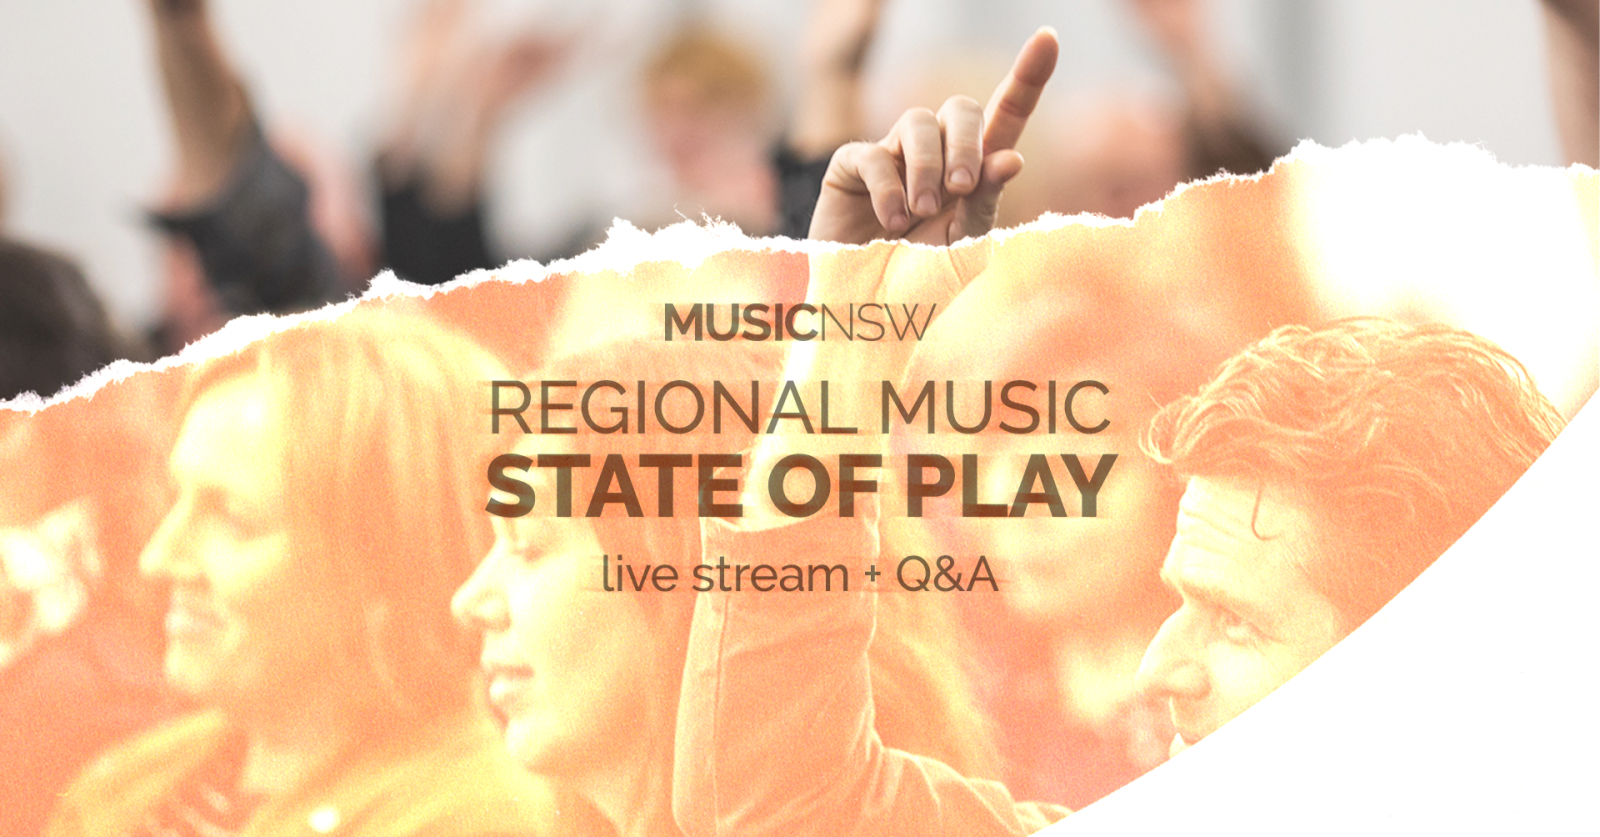 Regional Music State of Play